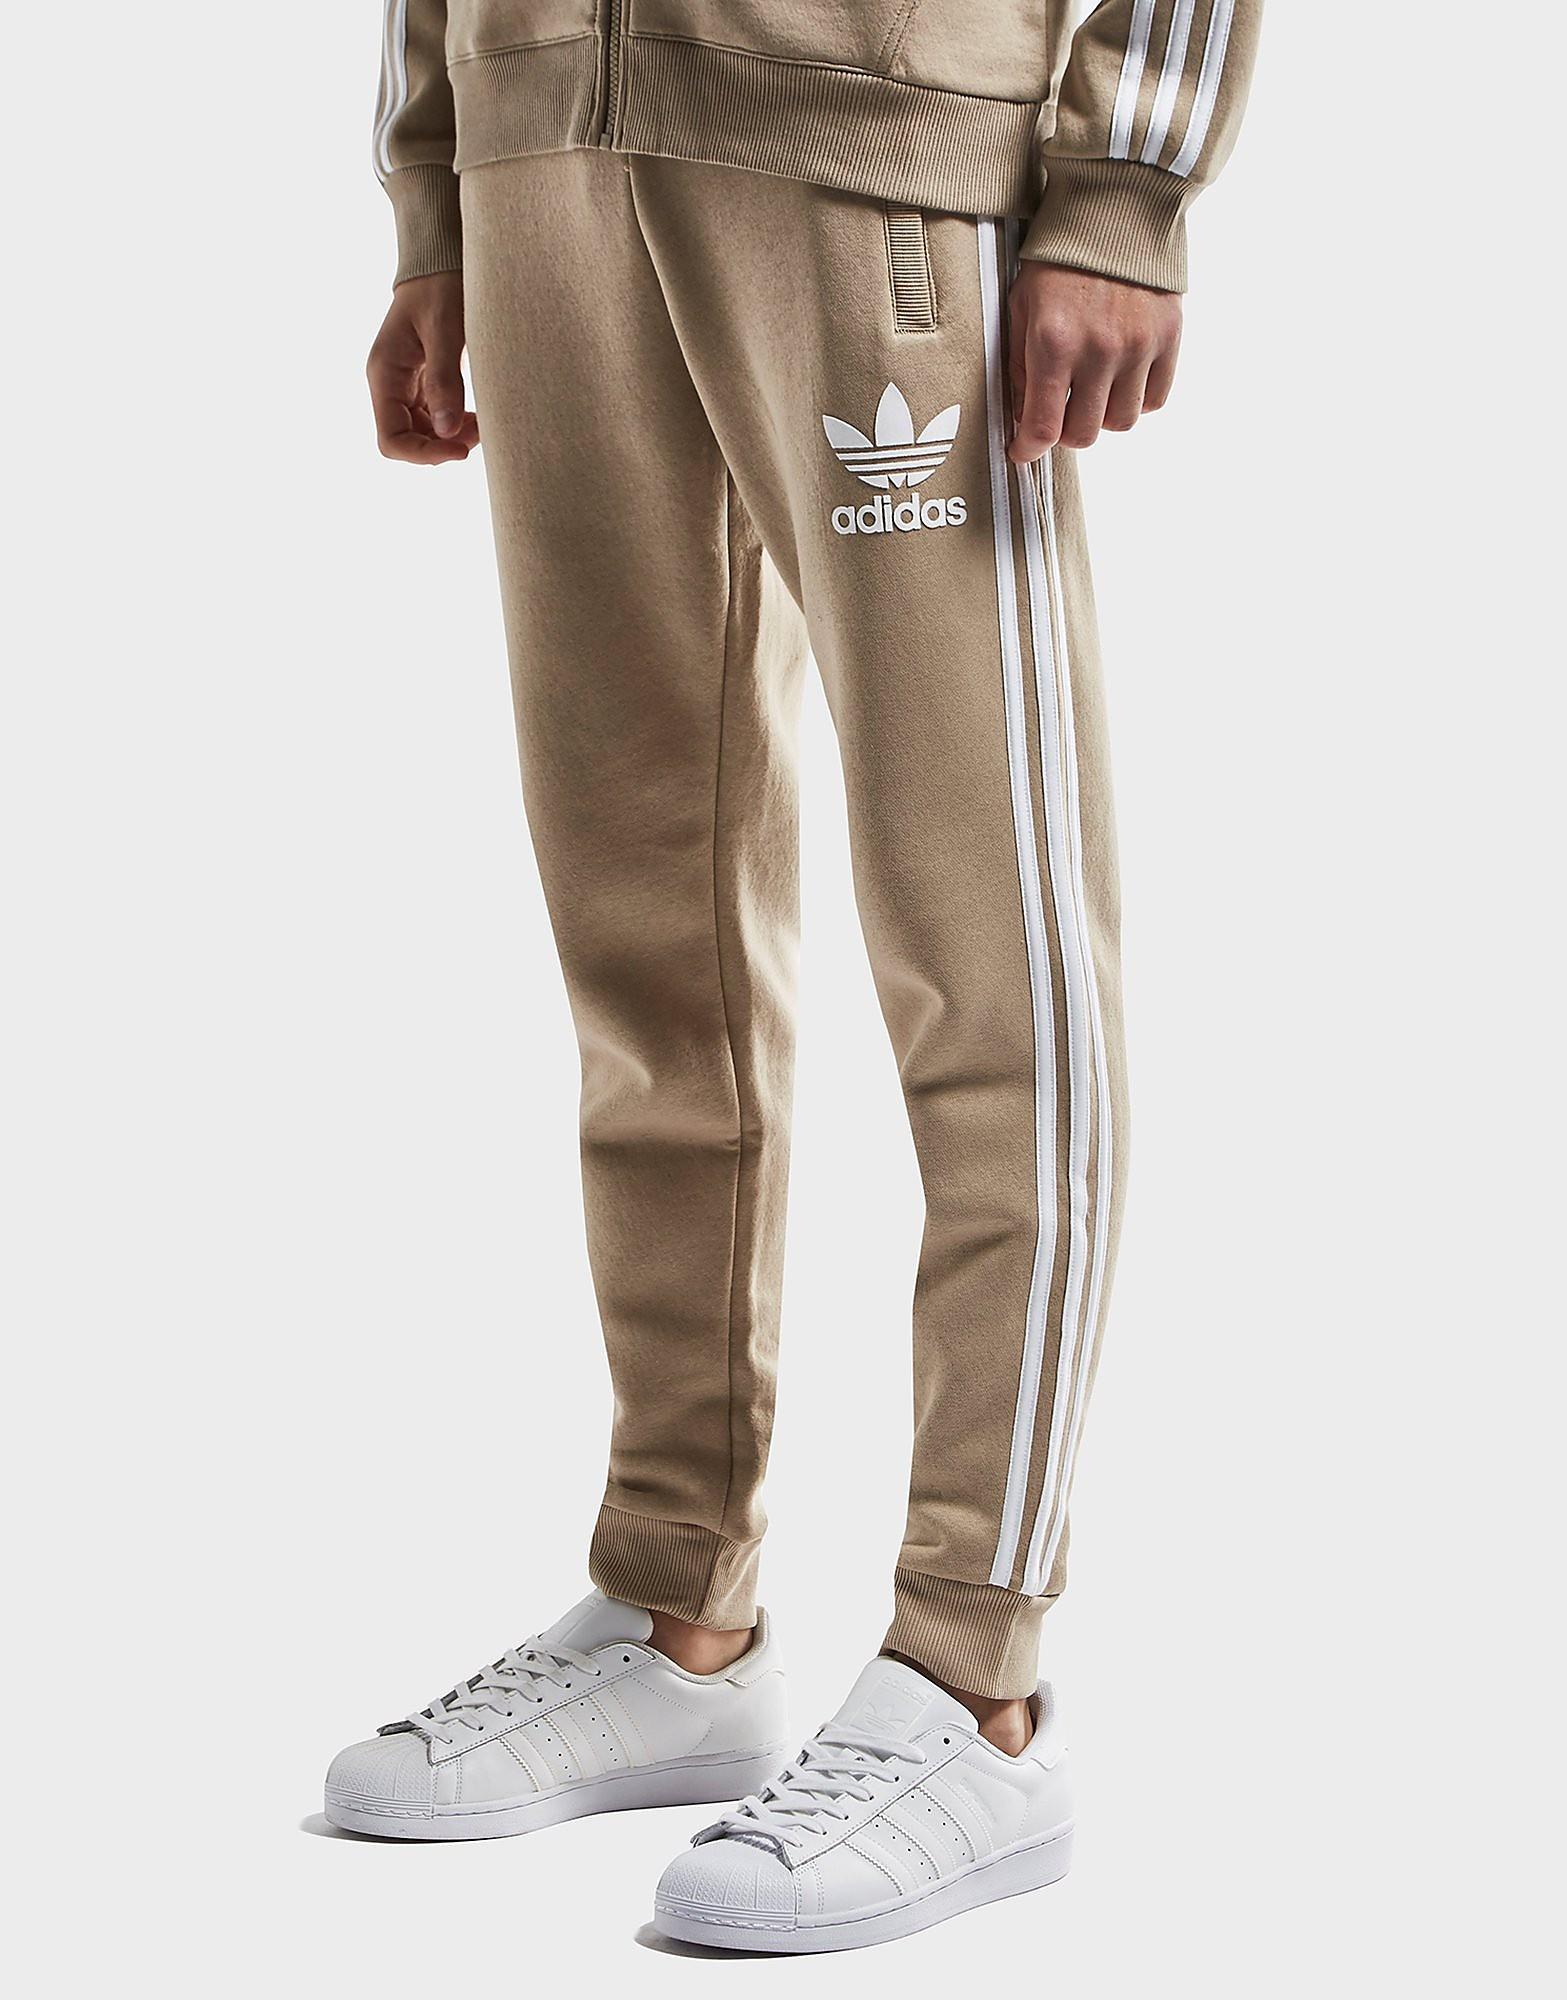 adidas Originals California Fleece Pants